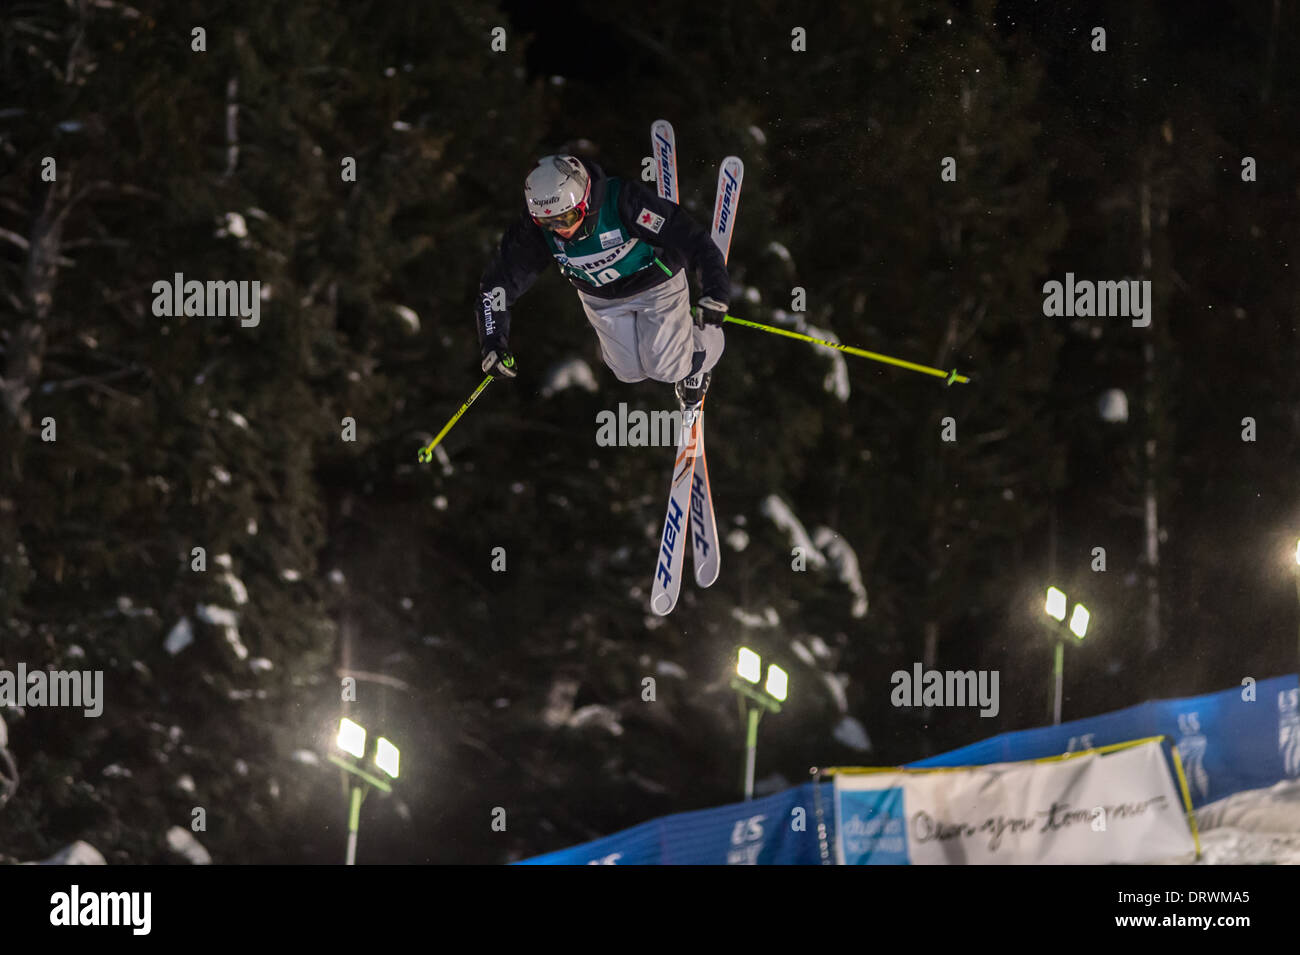 Maxime DUFOUR-LaPointe Launches at FIS Freestyle Ski World Cup 2014 Moguls, Deer Valley Resort, Park City, UT, USA - Stock Image